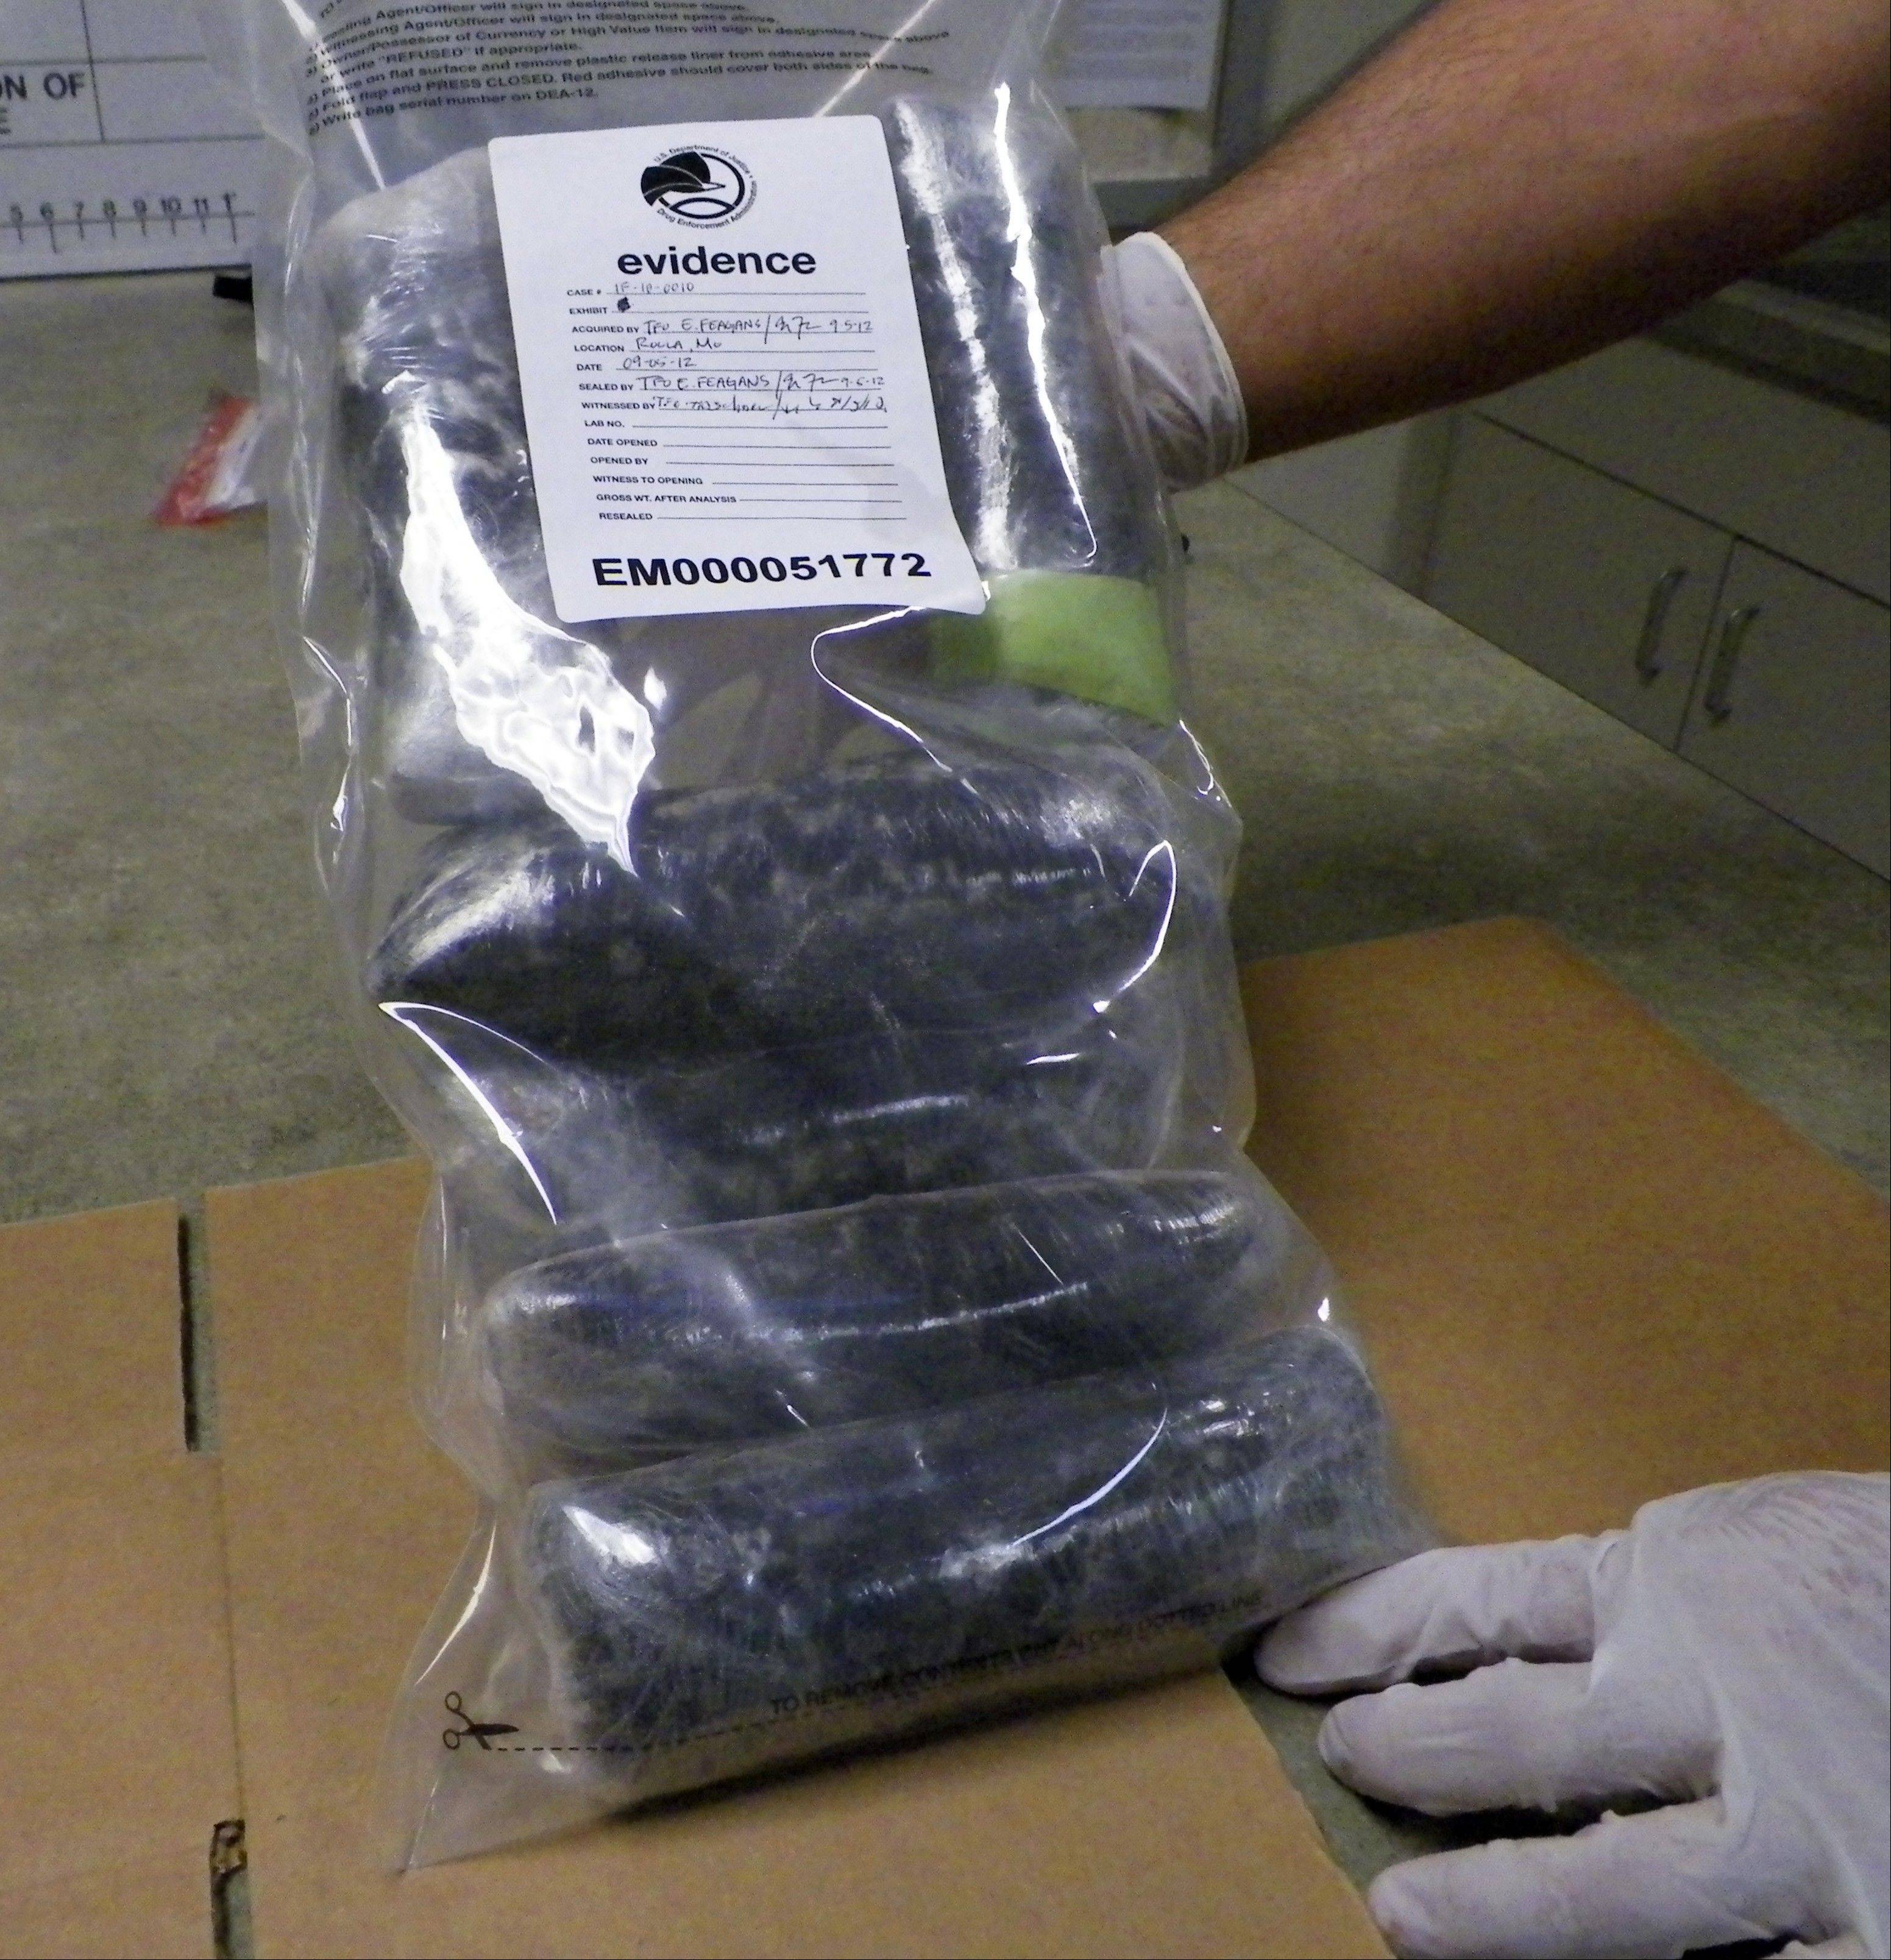 A U.S. Drug Enforcement Administration technician holds several pounds of Mexican meth confiscated in the St. Louis area.